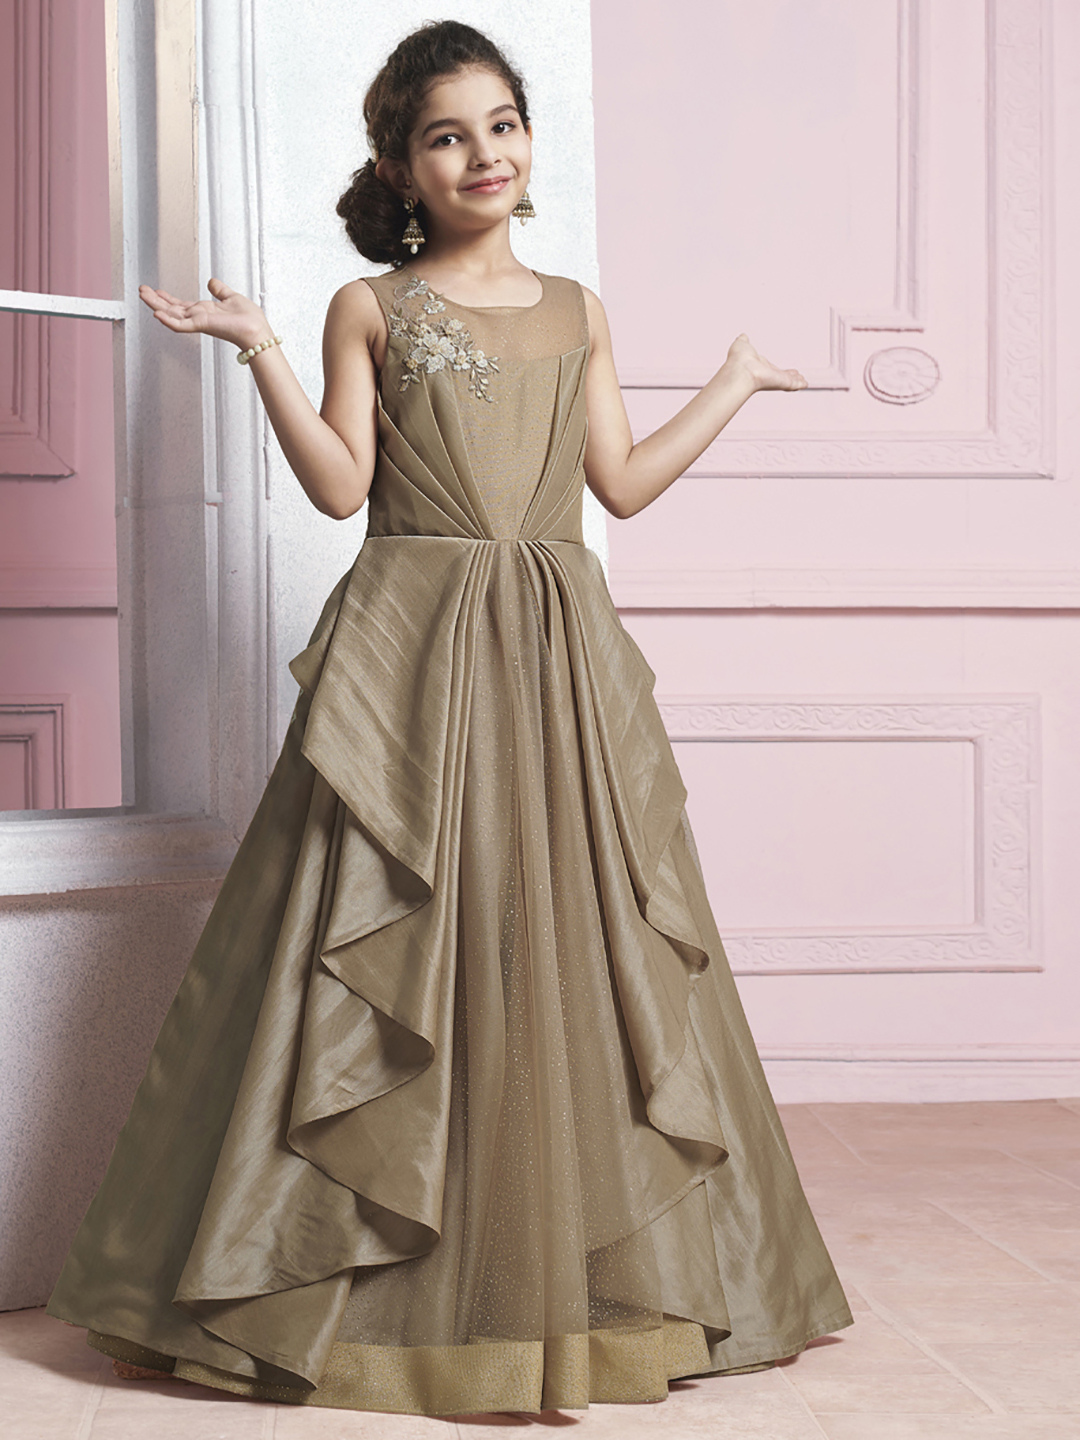 Girls Gowns - Buy Wedding Gown, Party wear Gowns online at best prices